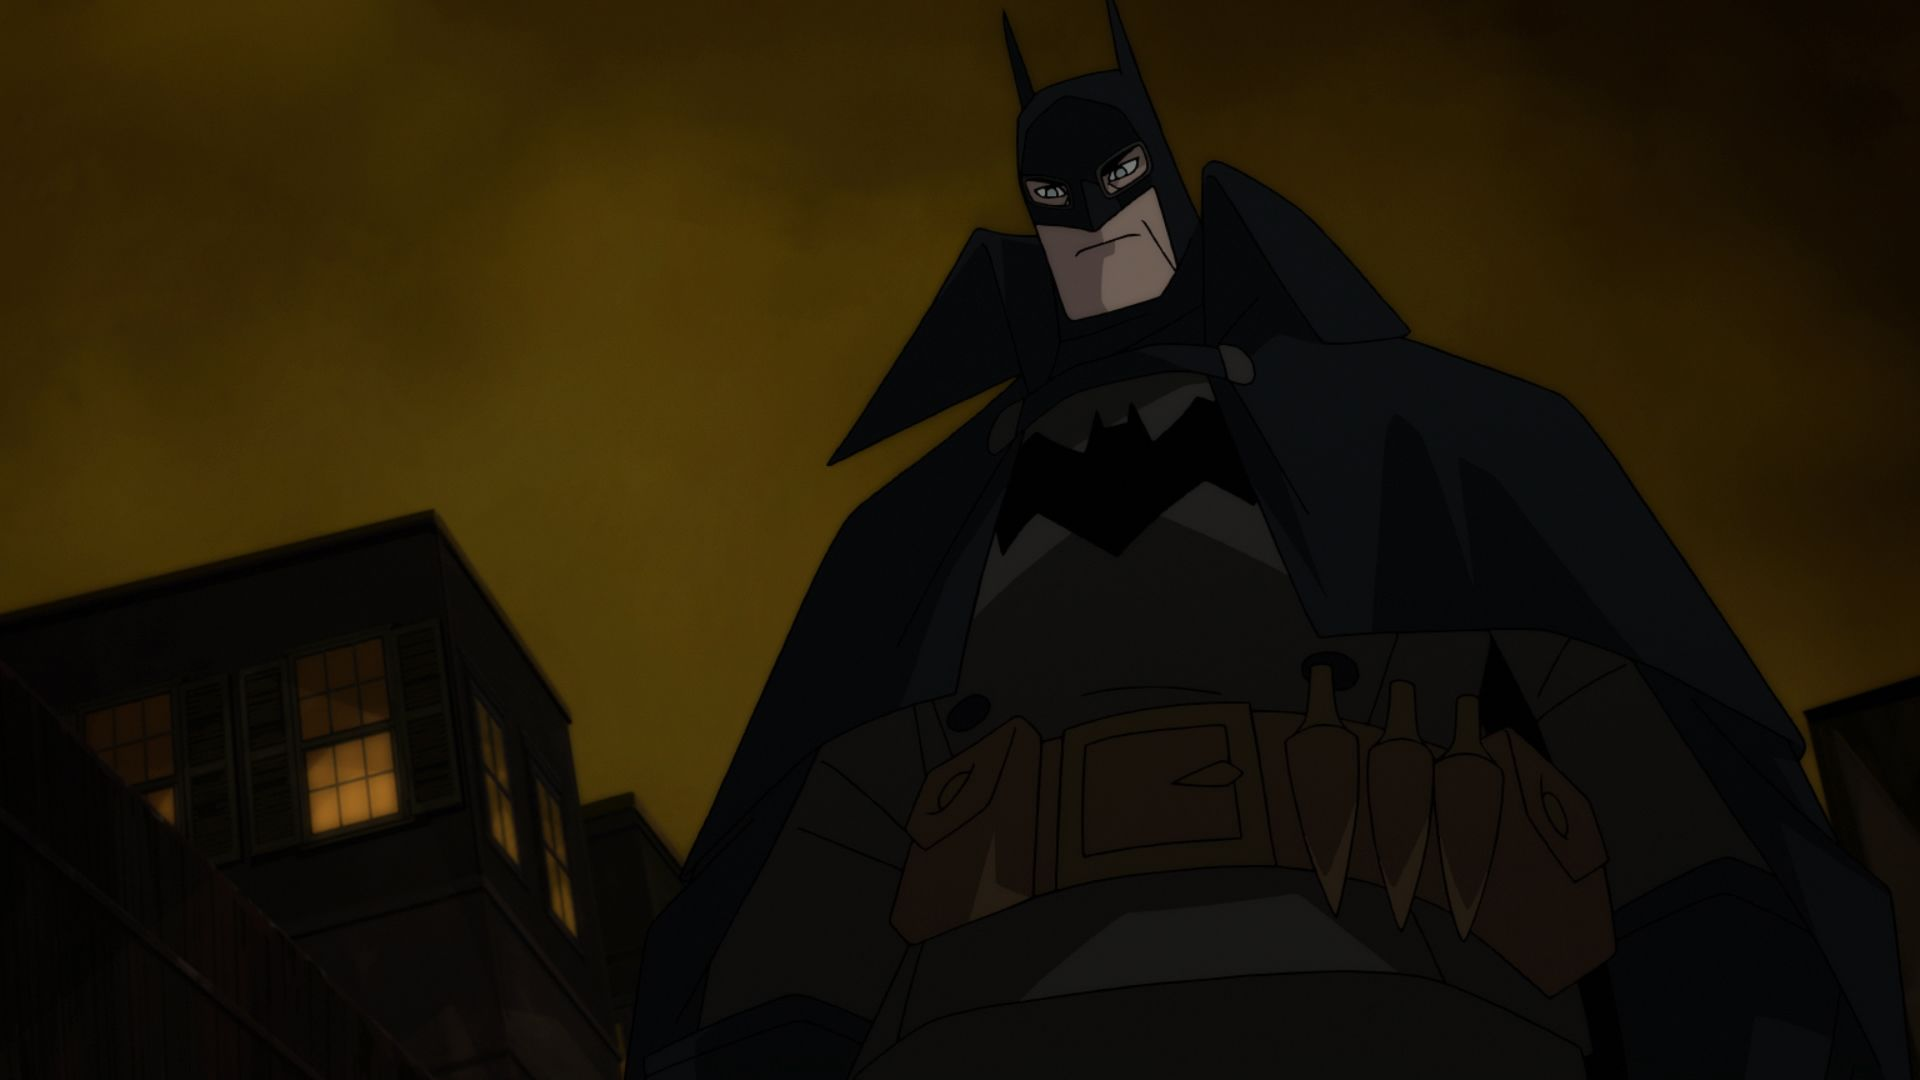 Batman Gotham By Gaslight Bluray Release Date Details Confirmed Collider